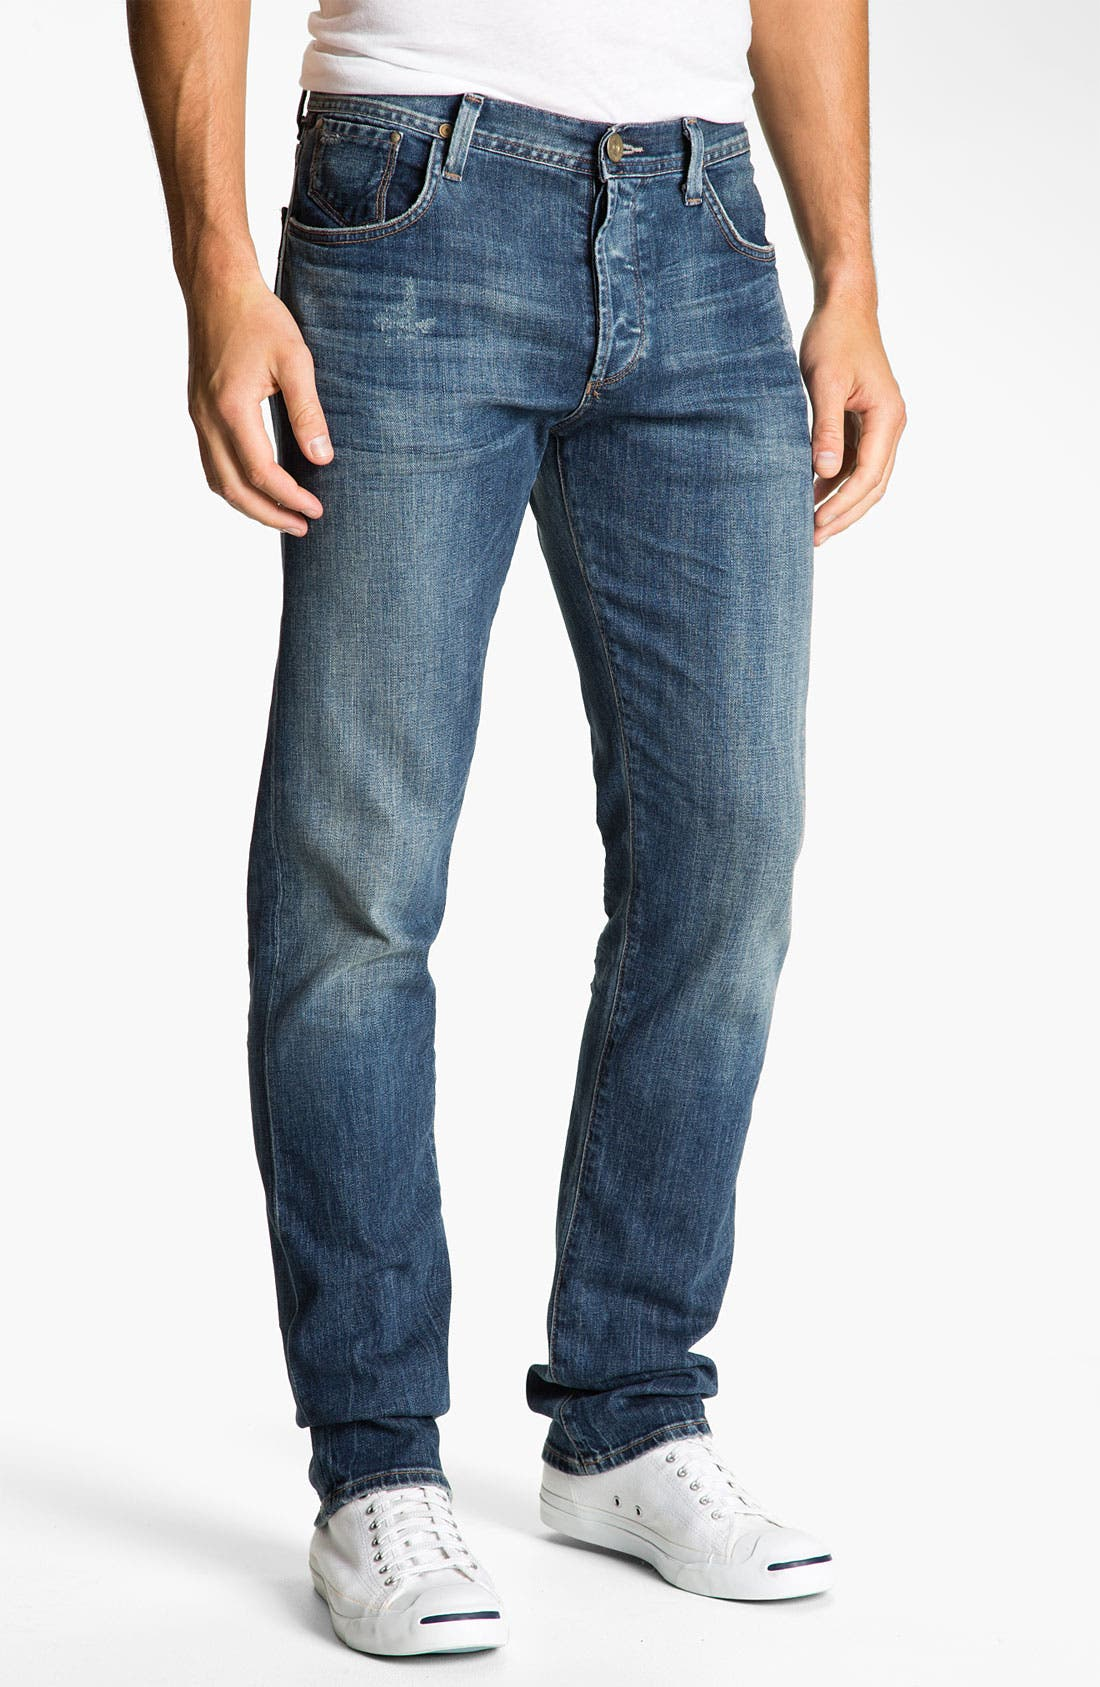 Alternate Image 1 Selected - Citizens of Humanity 'Core' Slim Fit Jeans (Lawrence)